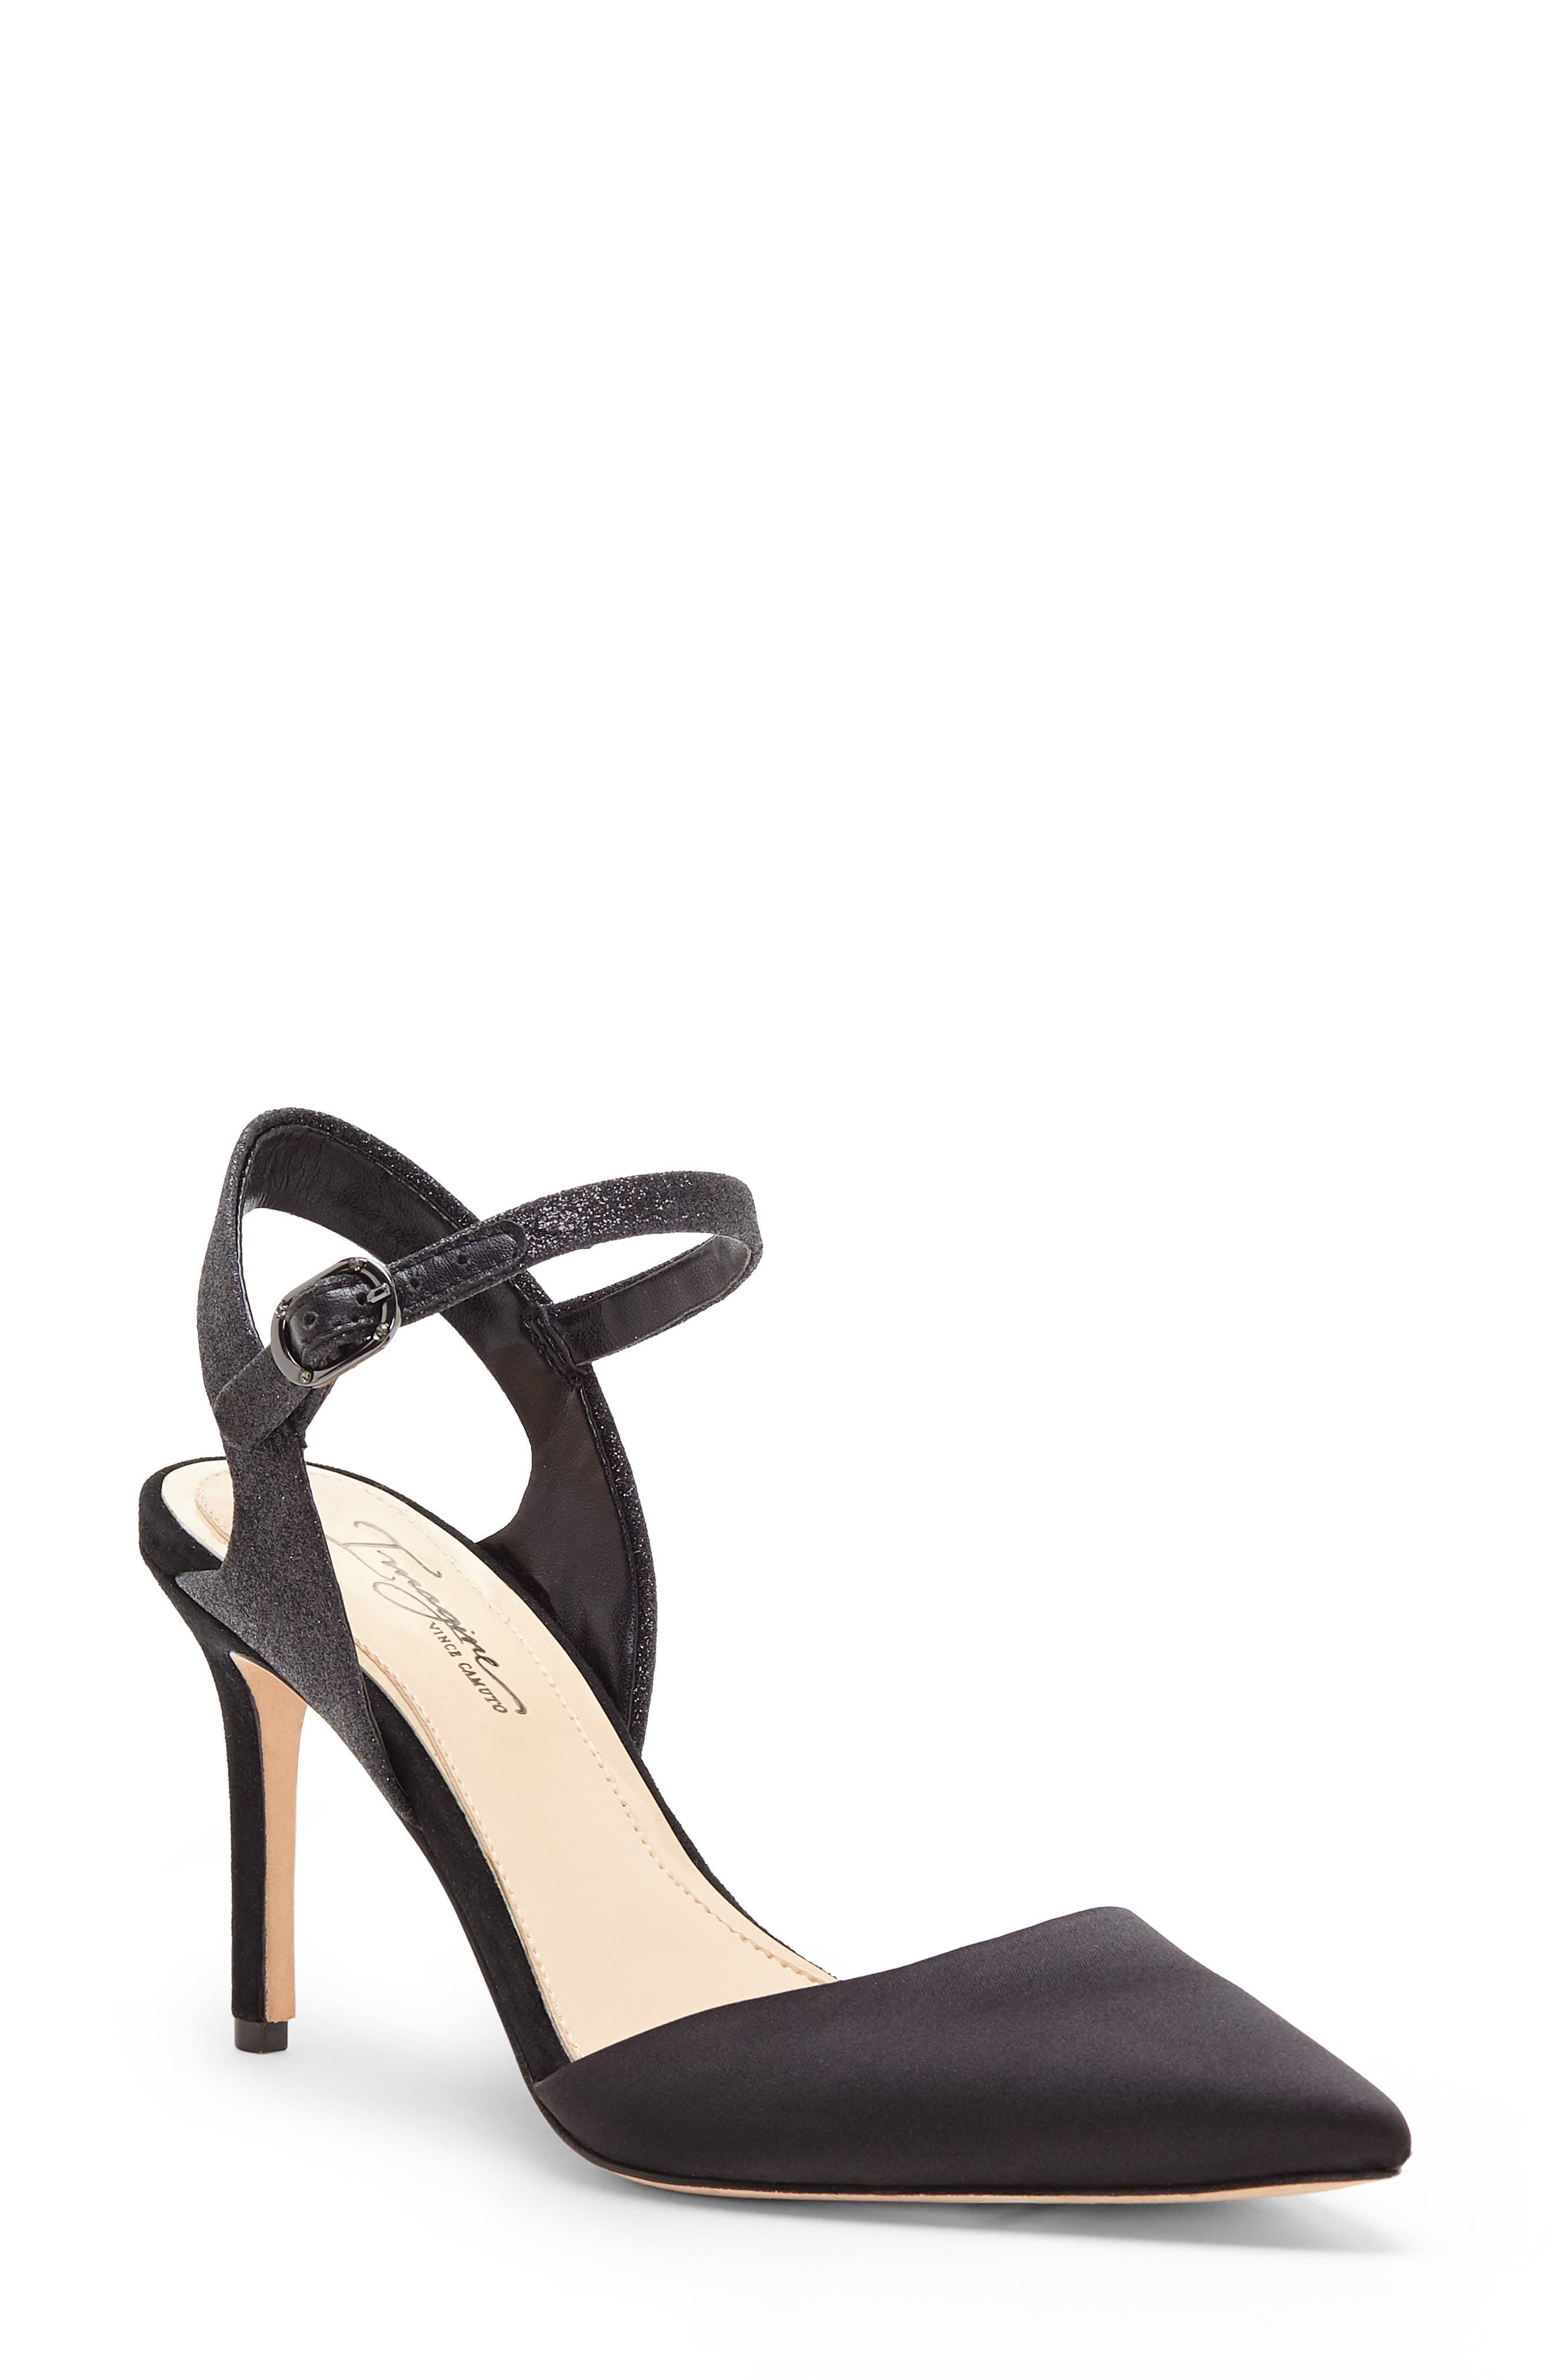 IMAGINE BY VINCE CAMUTO Glora Pointy Toe Pump, Main, color, BLACK SATIN